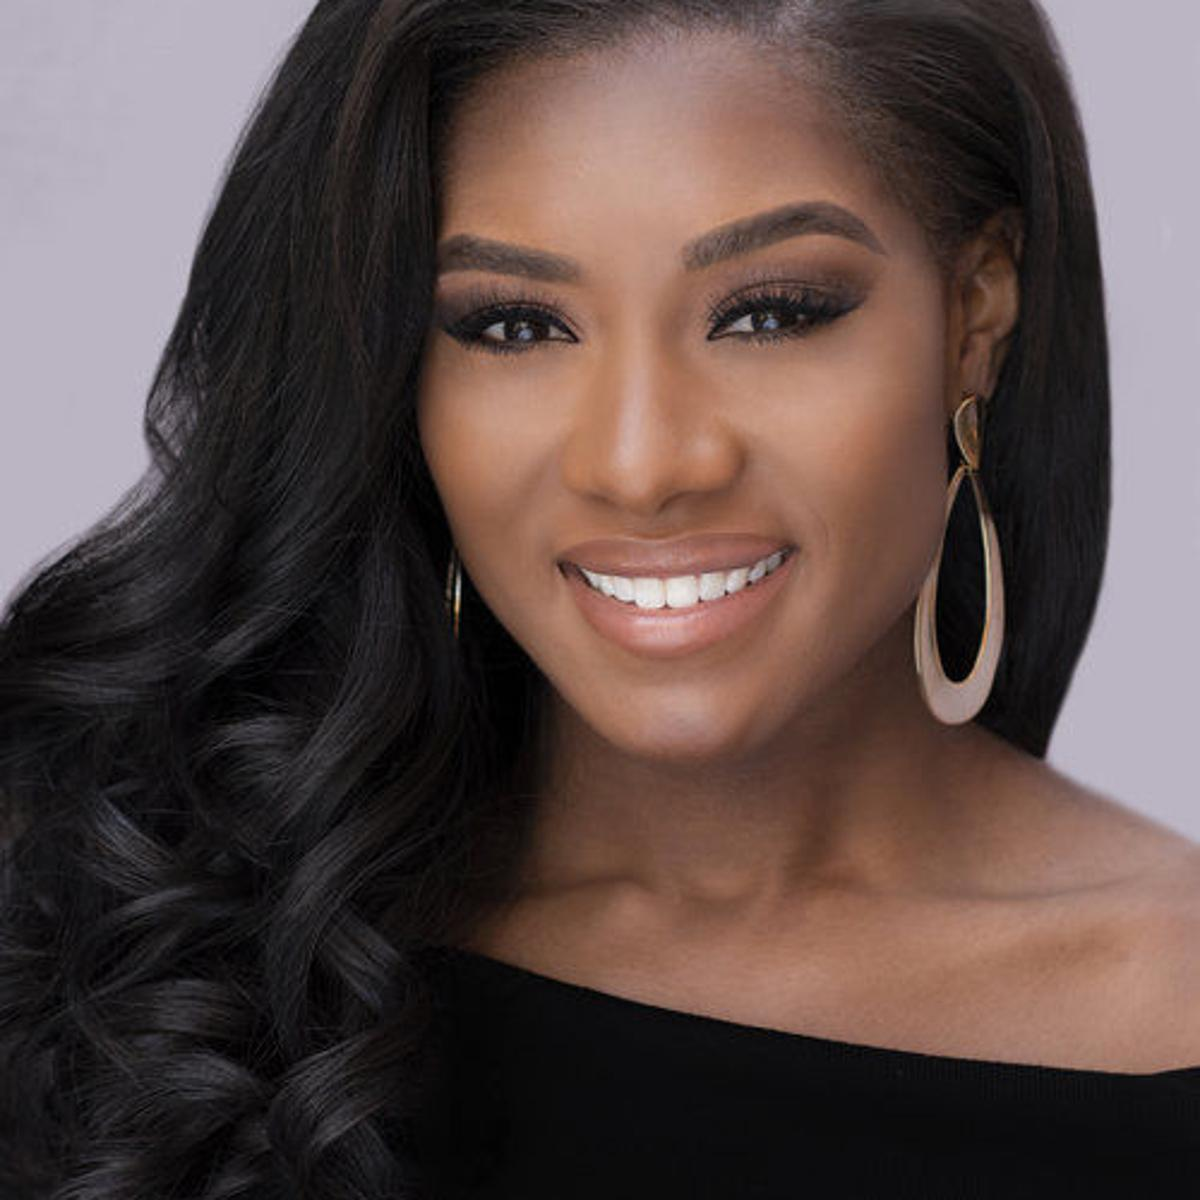 Winston-Salem native to compete in revamped Miss America